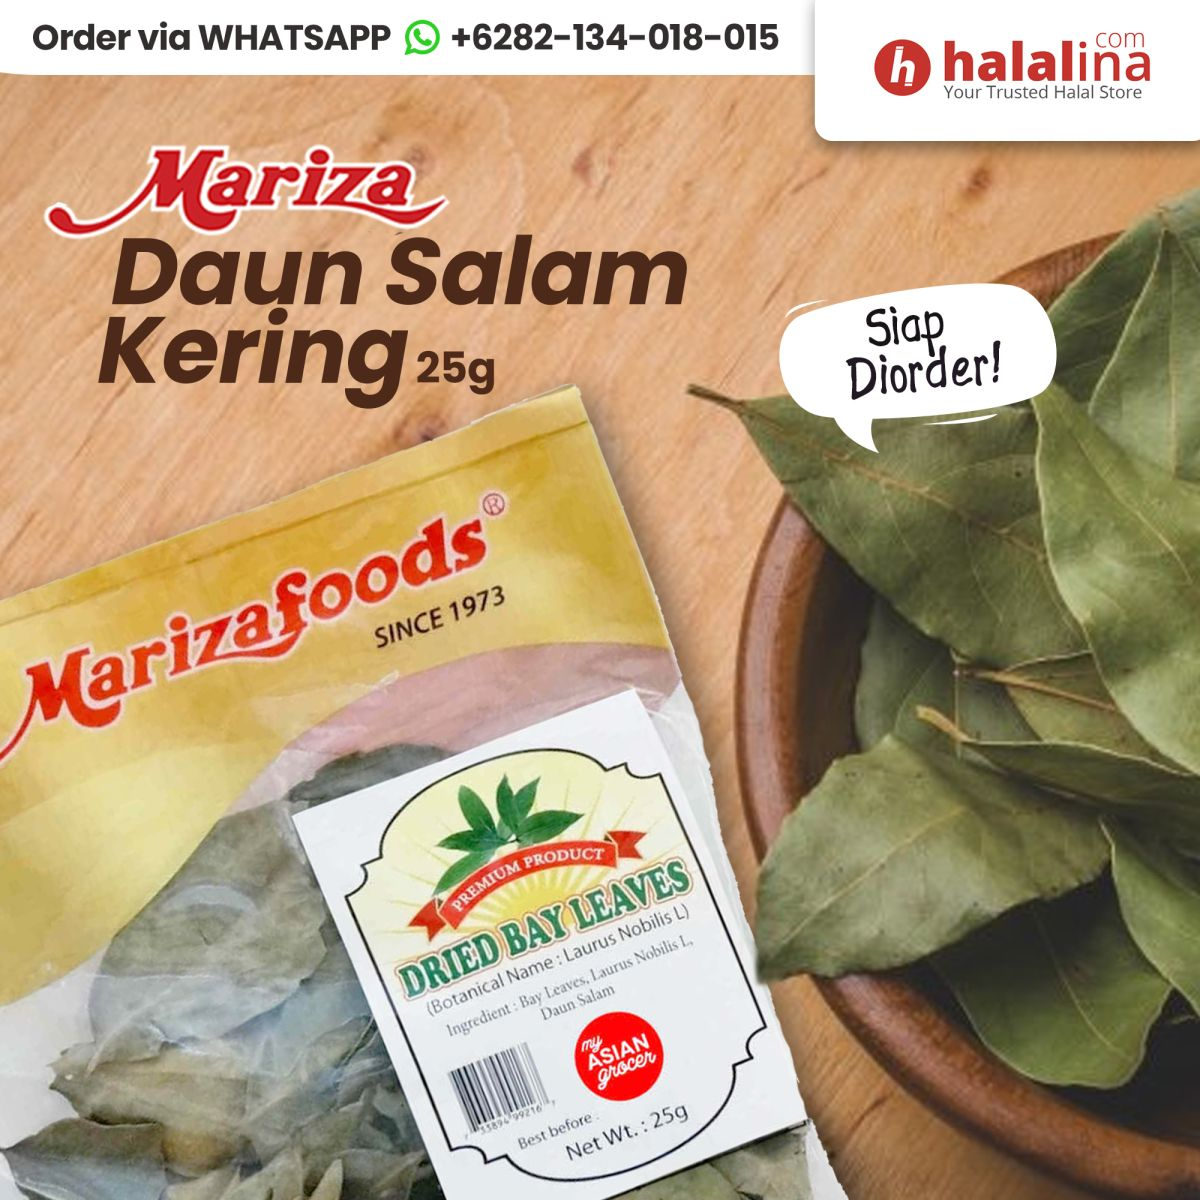 Halalina Phone 62 821 3401 8015 Halal Meat Online Delivery In Japan In 2020 Meat Online Halal Recipes Halal